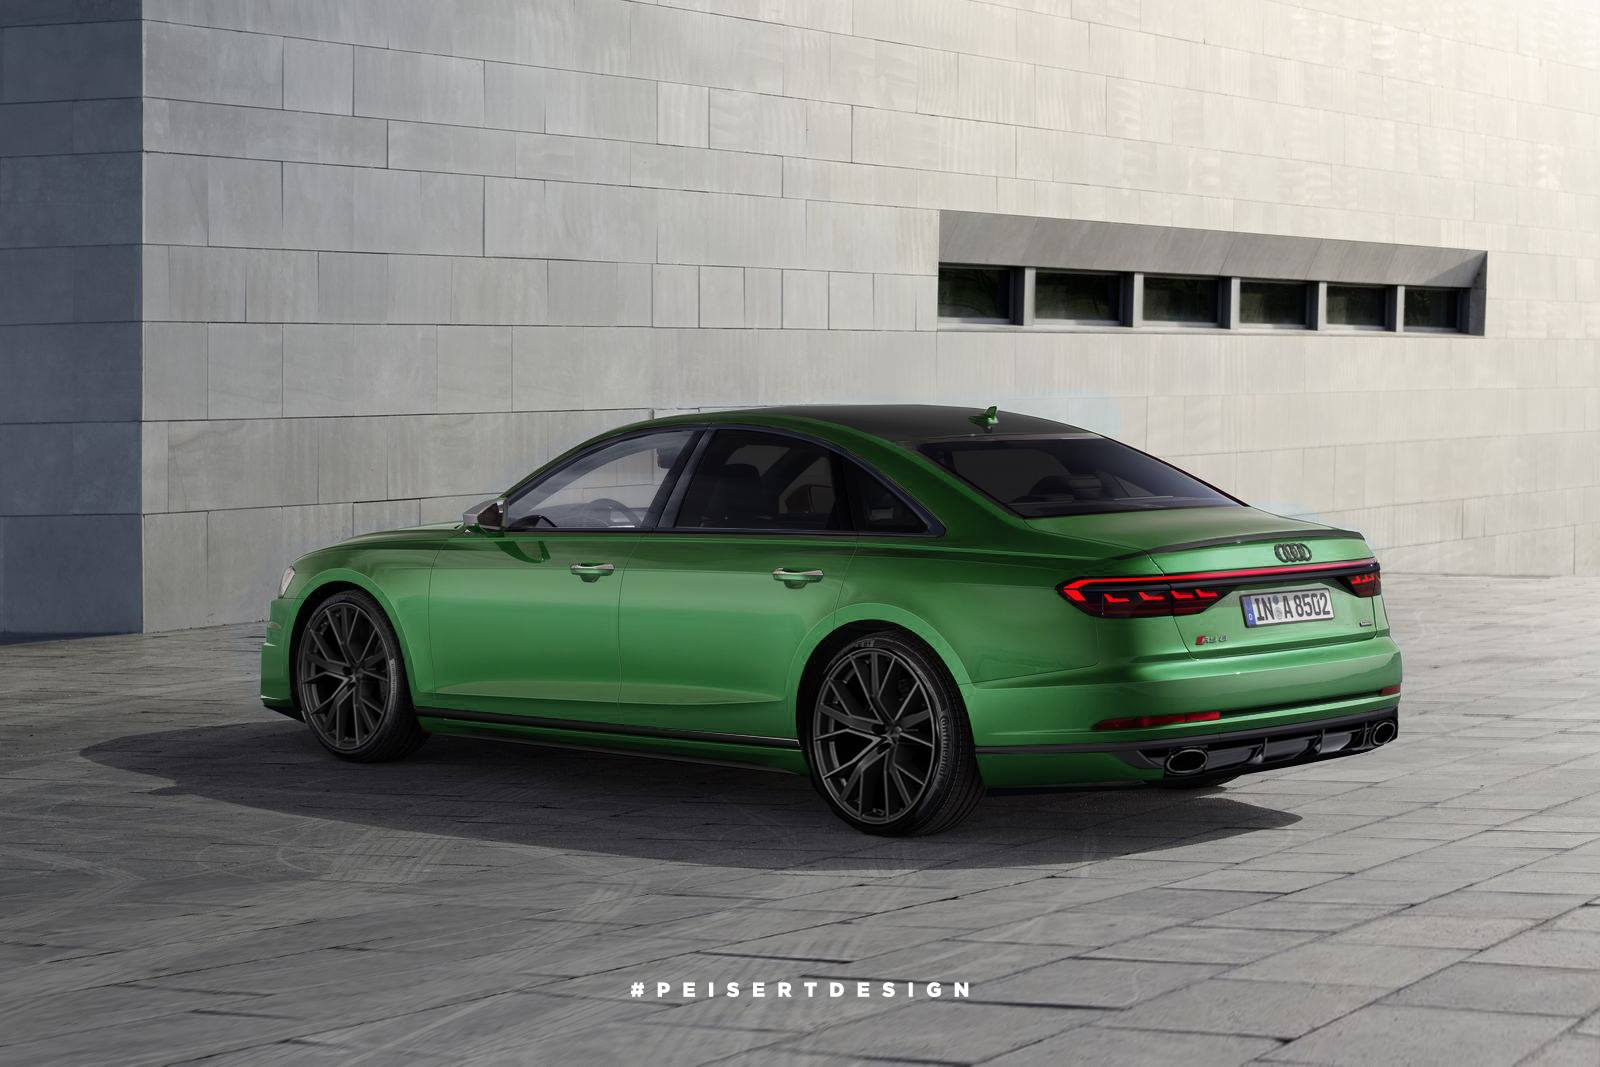 2020 audi rs8 and 2019 s8 sedans rendered which is better. Black Bedroom Furniture Sets. Home Design Ideas